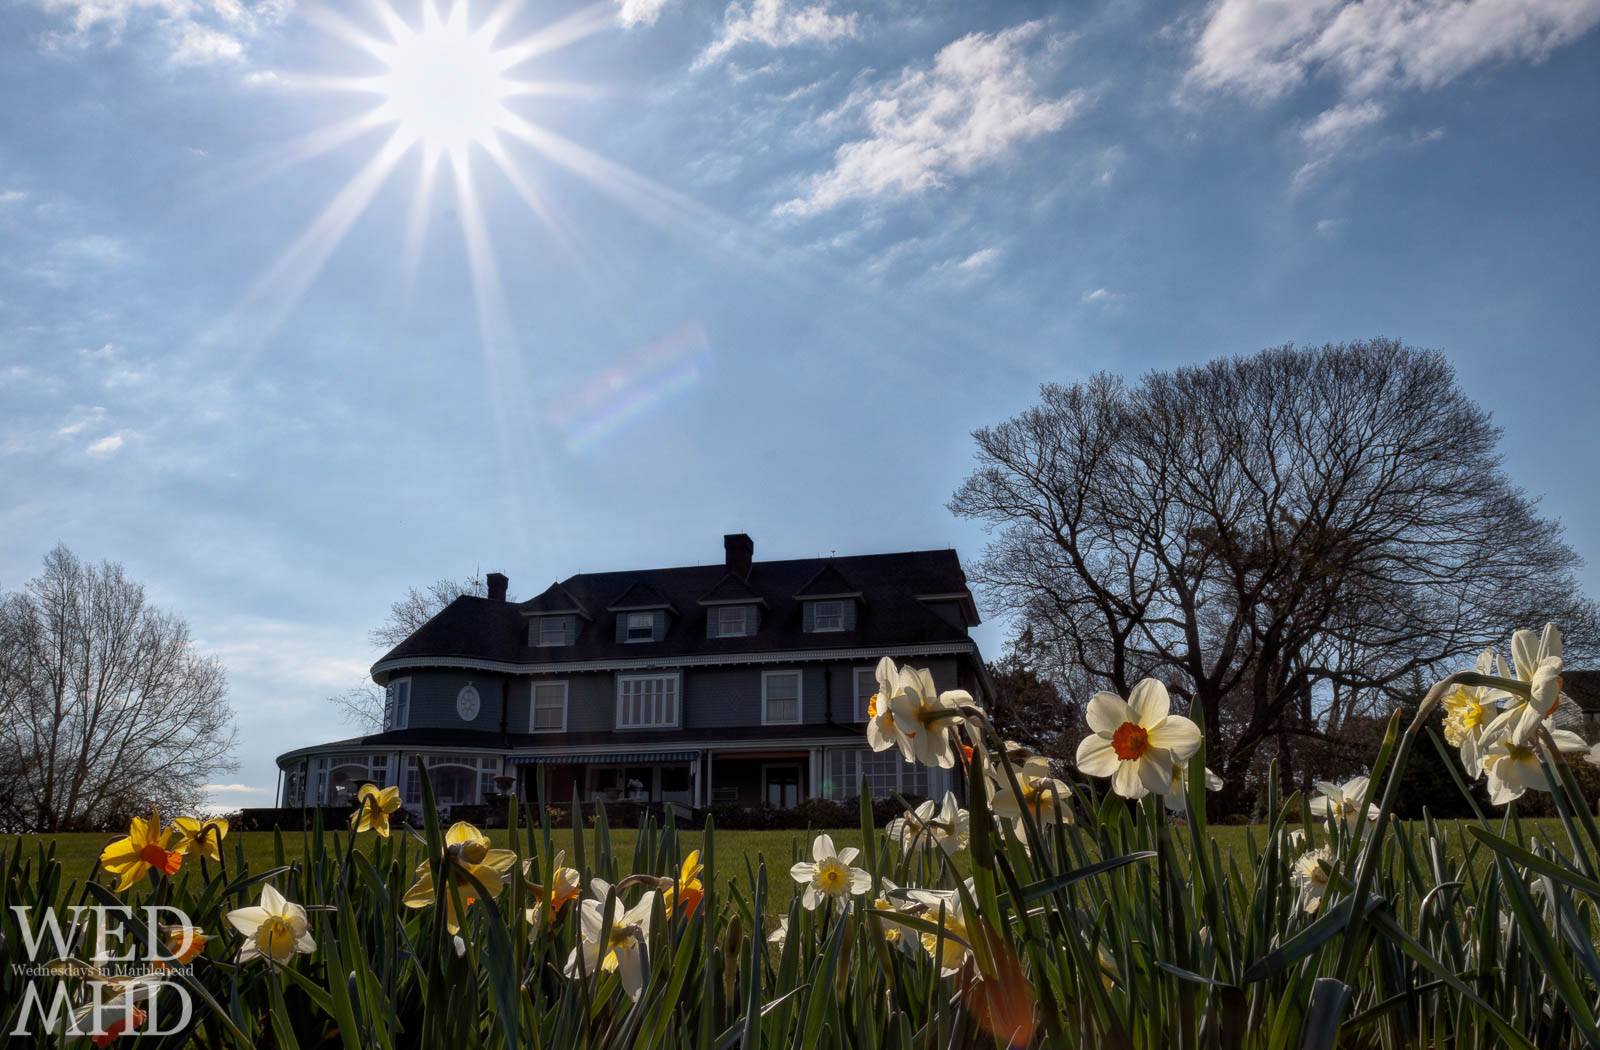 Marblehead neck house with flowers in sun